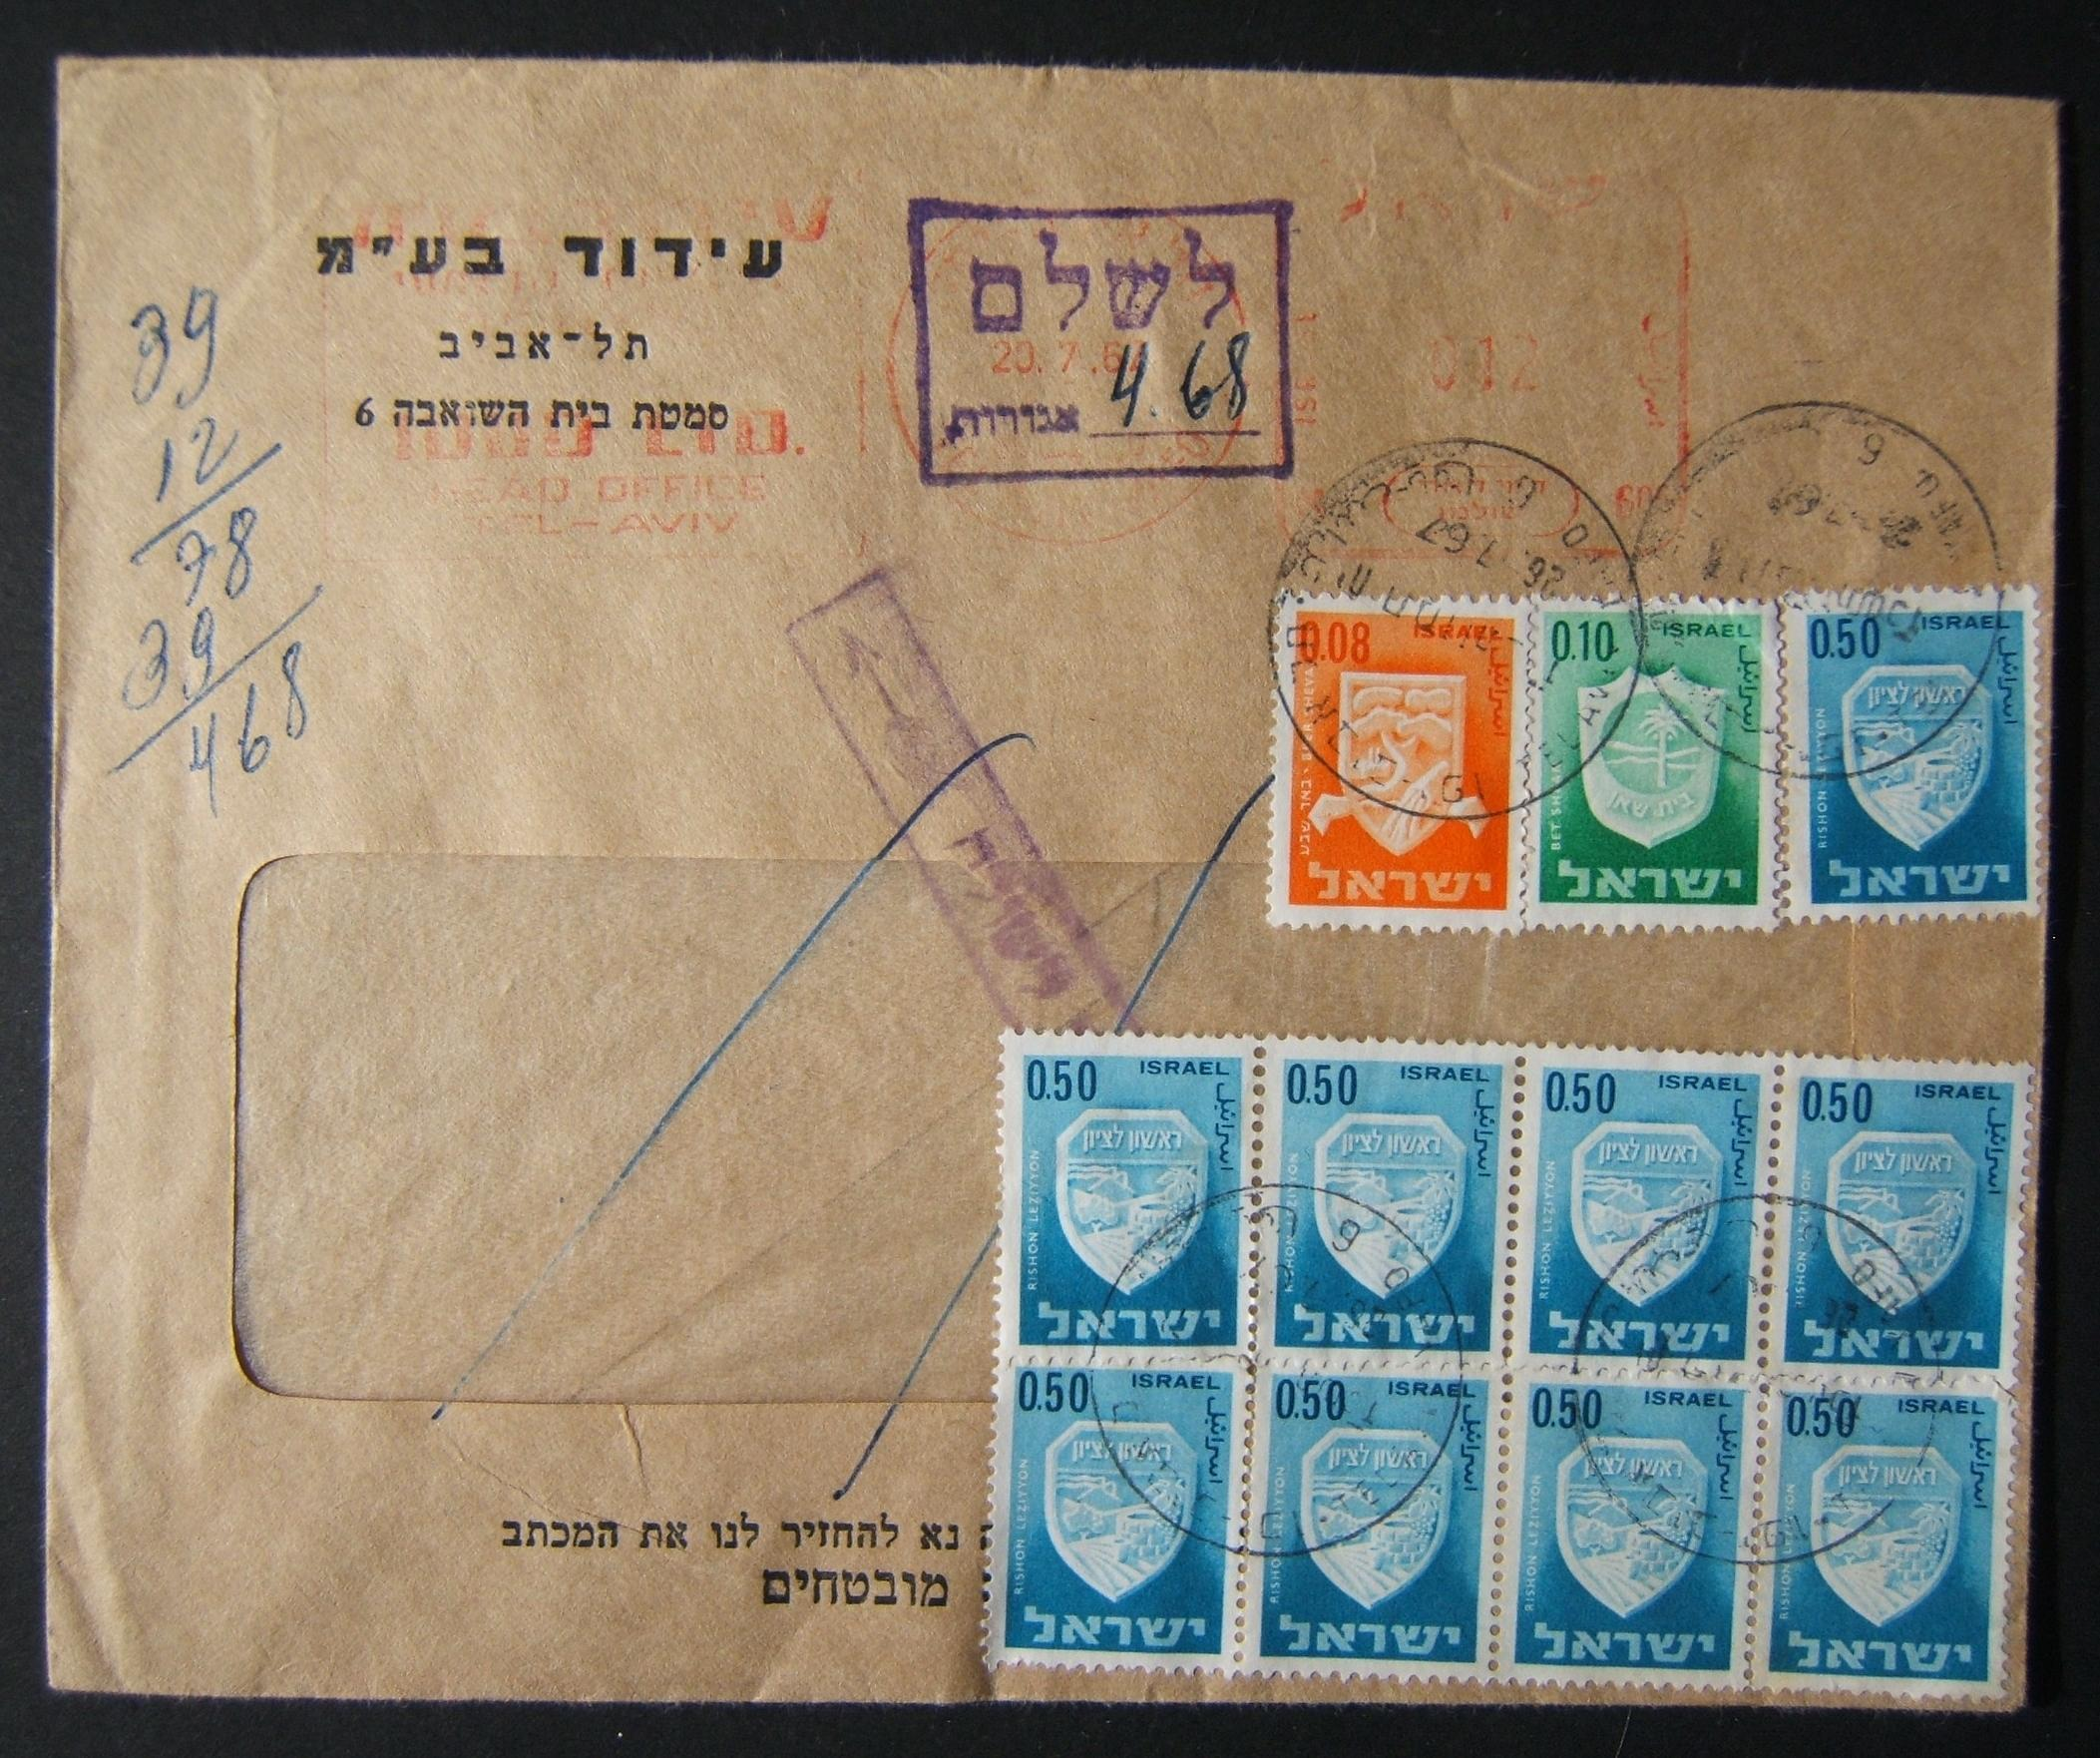 1967 domestic 'top of the pile' taxed franking: 20-7-67 pm comm. cv ex TLV franked by meter at DO-12 period 12 Ag rate, returned to sender as address unknown (cachet); as cv prepri